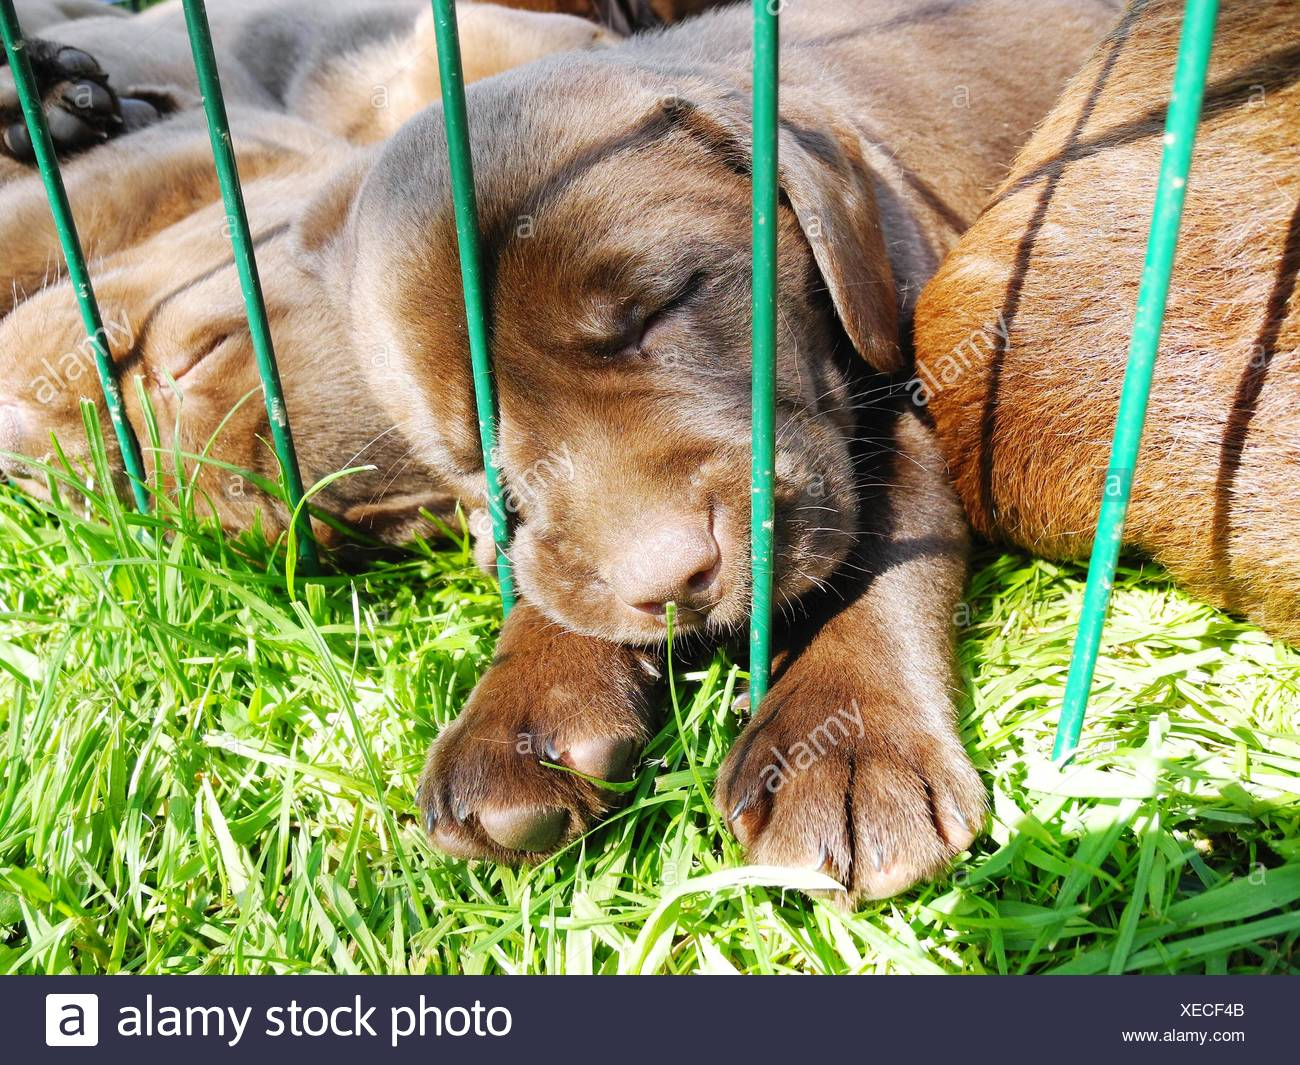 Puppies Sleeping In Backyard - Stock Image